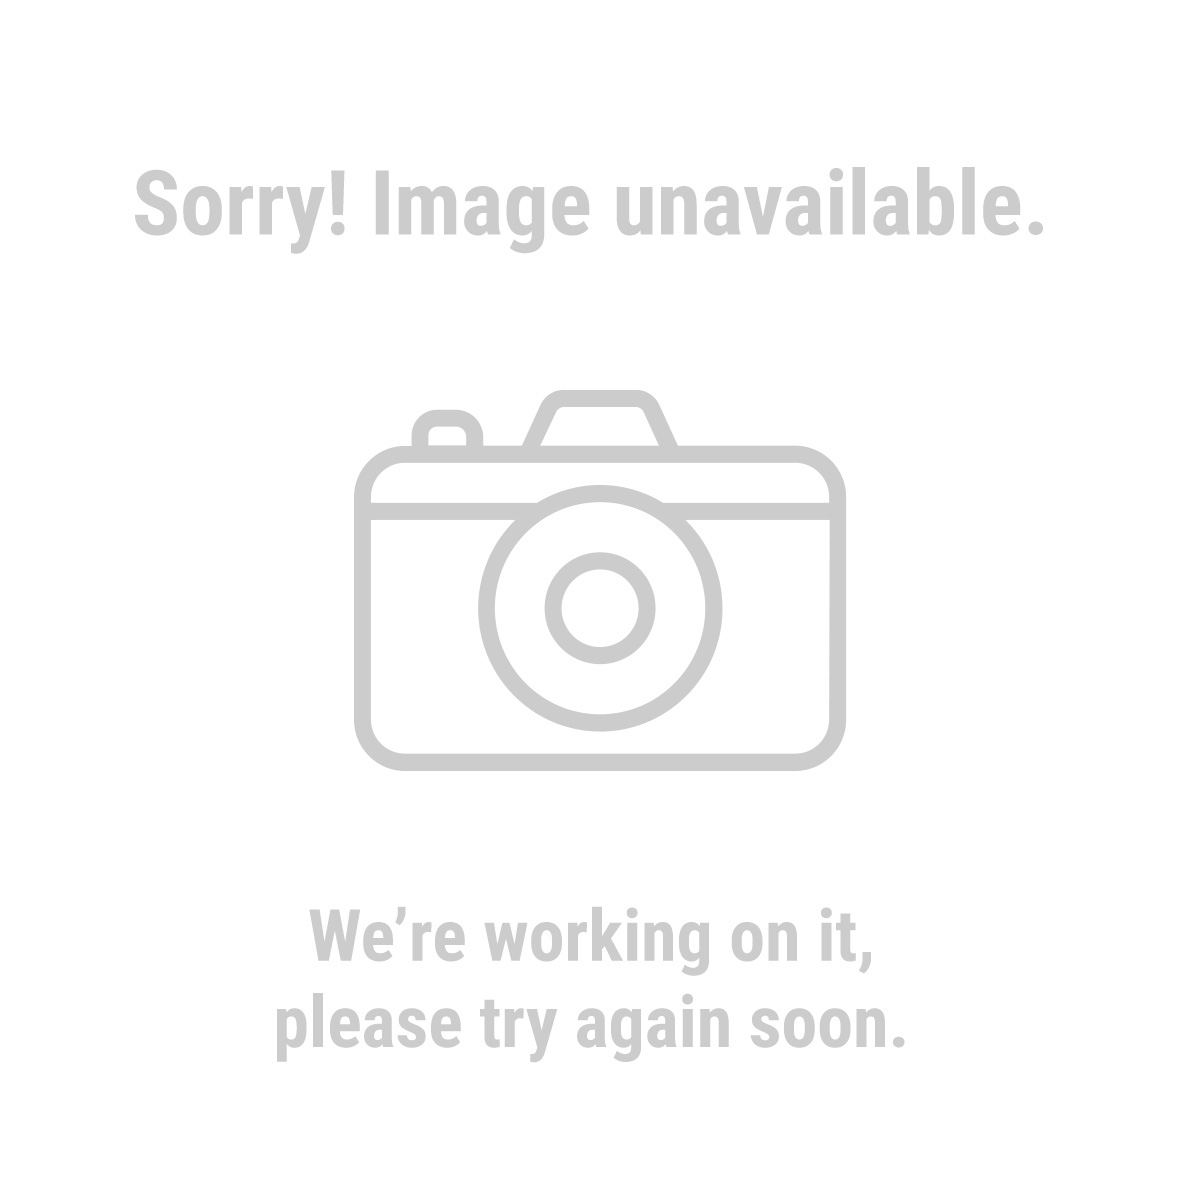 Storehouse 67605 125 Piece Tap Reseater Washer Assortment